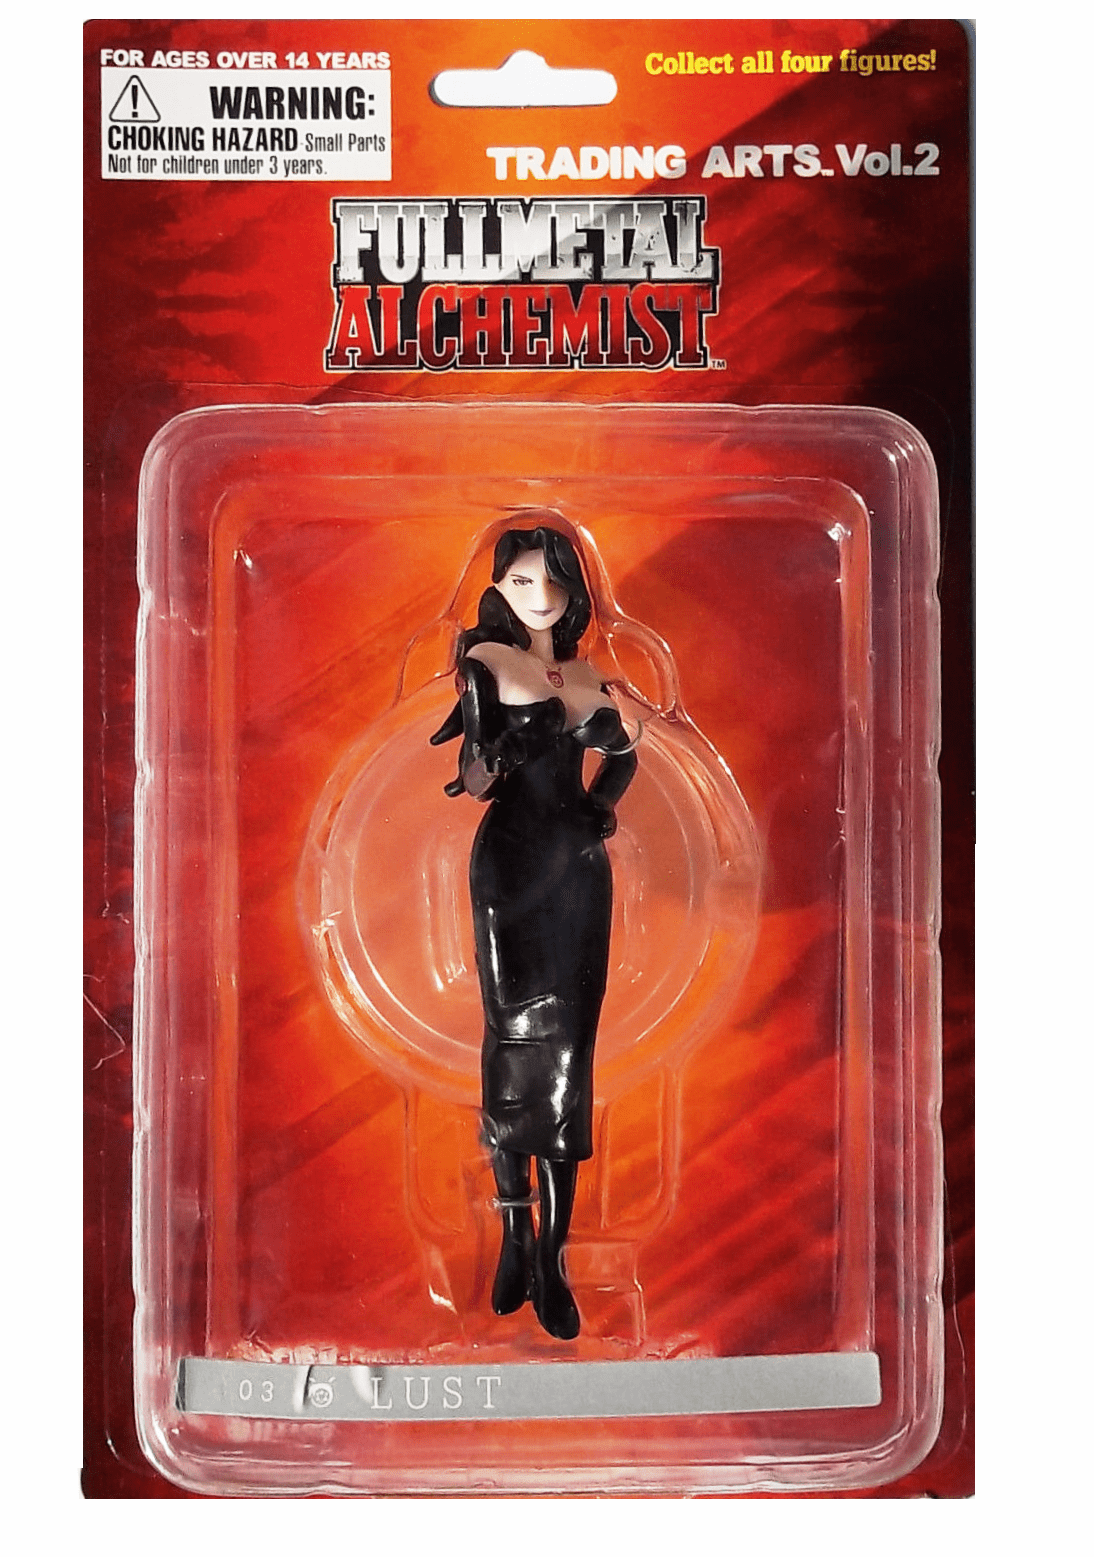 Fullmetal Alchemist Trading Arts Vol. 2 Mini Lust Figure